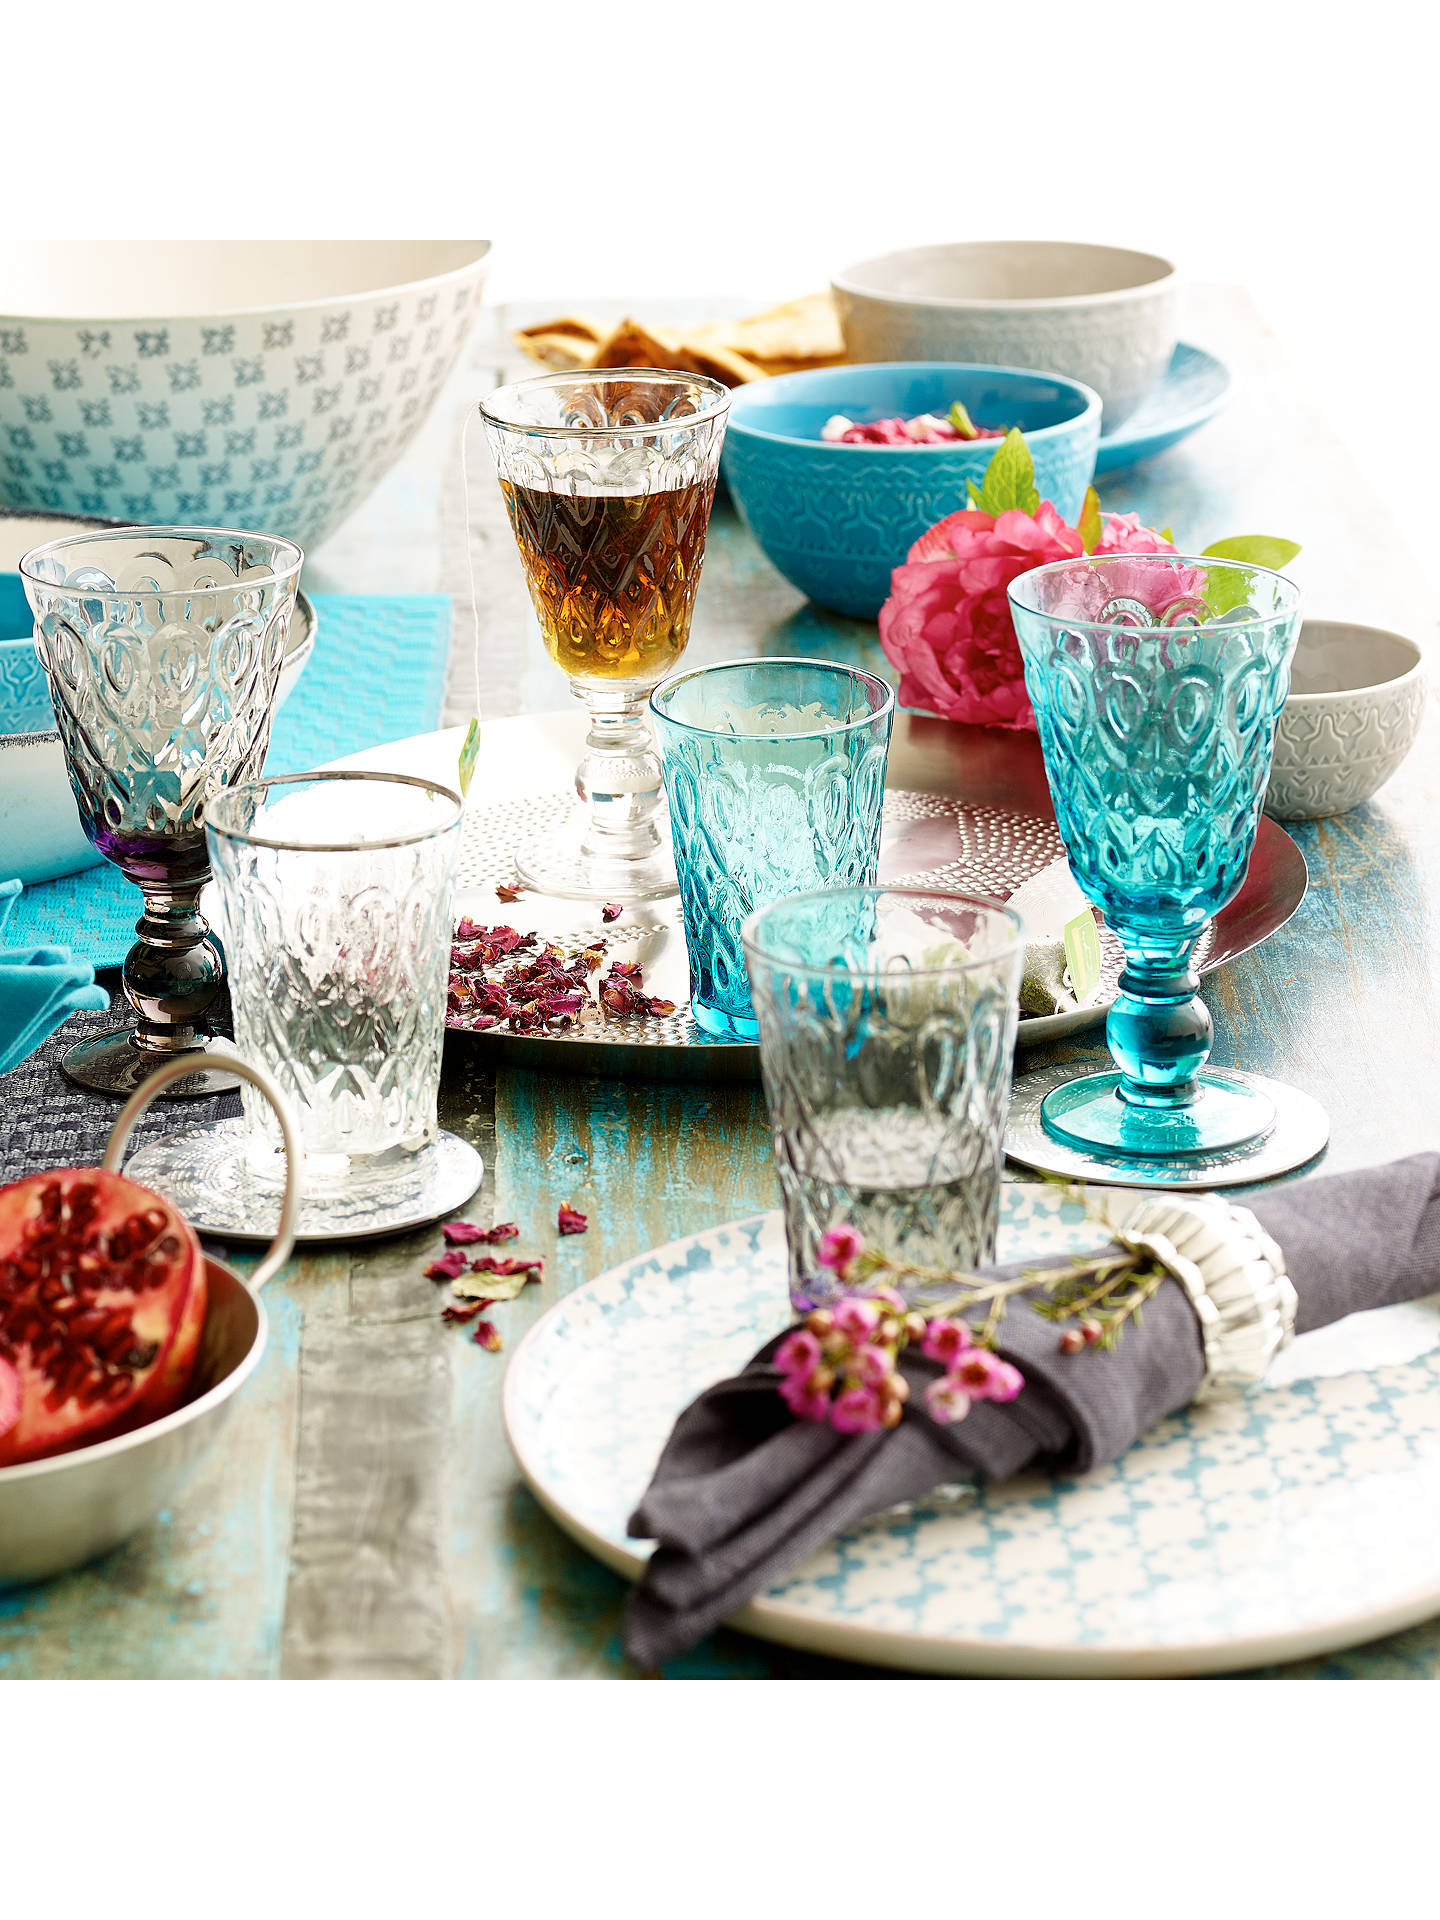 Buy John Lewis Wine Glass, Persian Barbecue, Turquoise Online at johnlewis.com